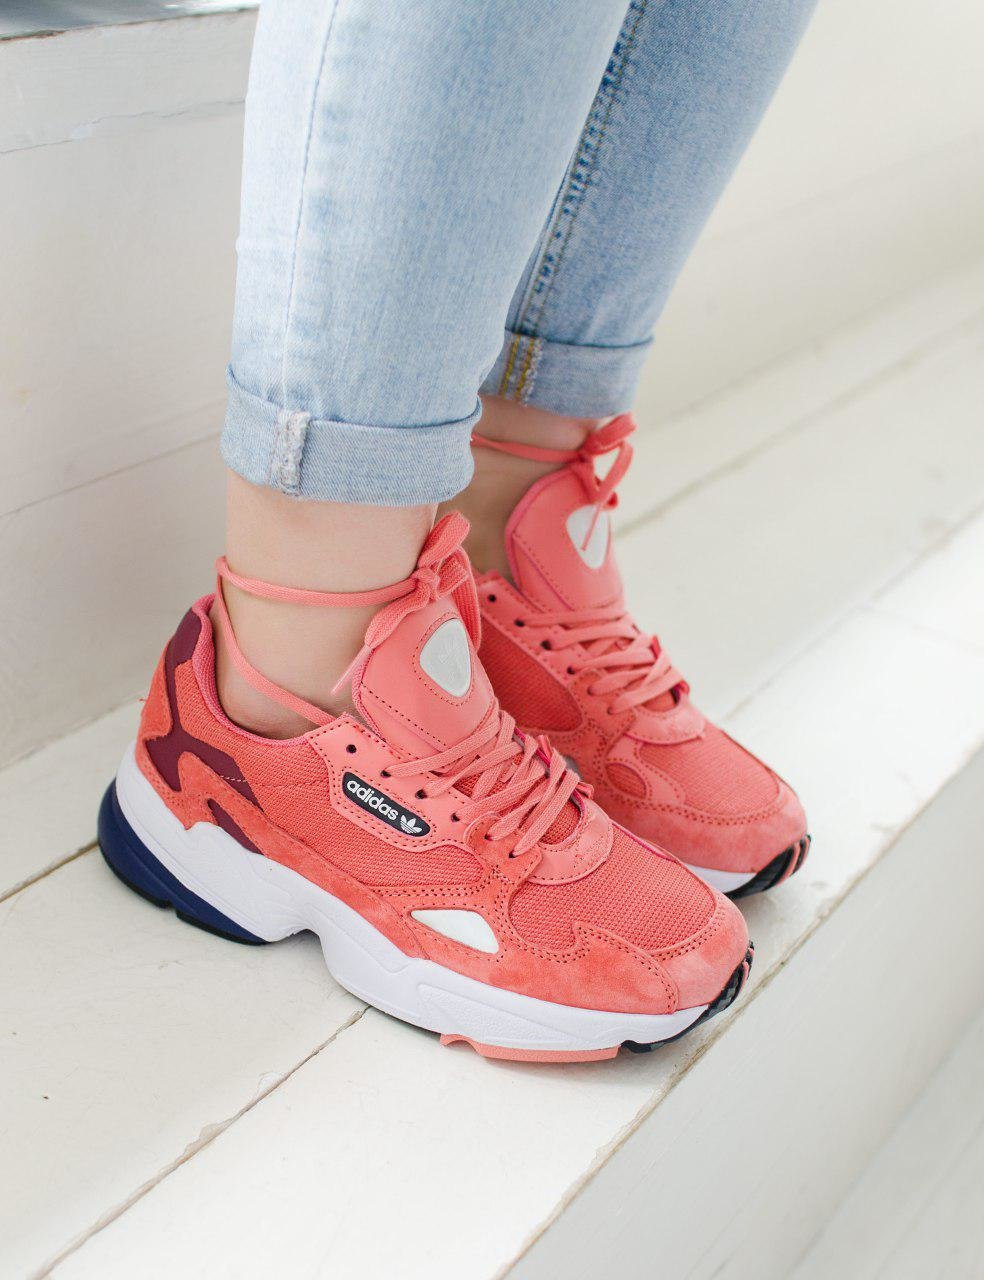 Adidas Falcon Light Red ( Реплика ААА+ ), 36